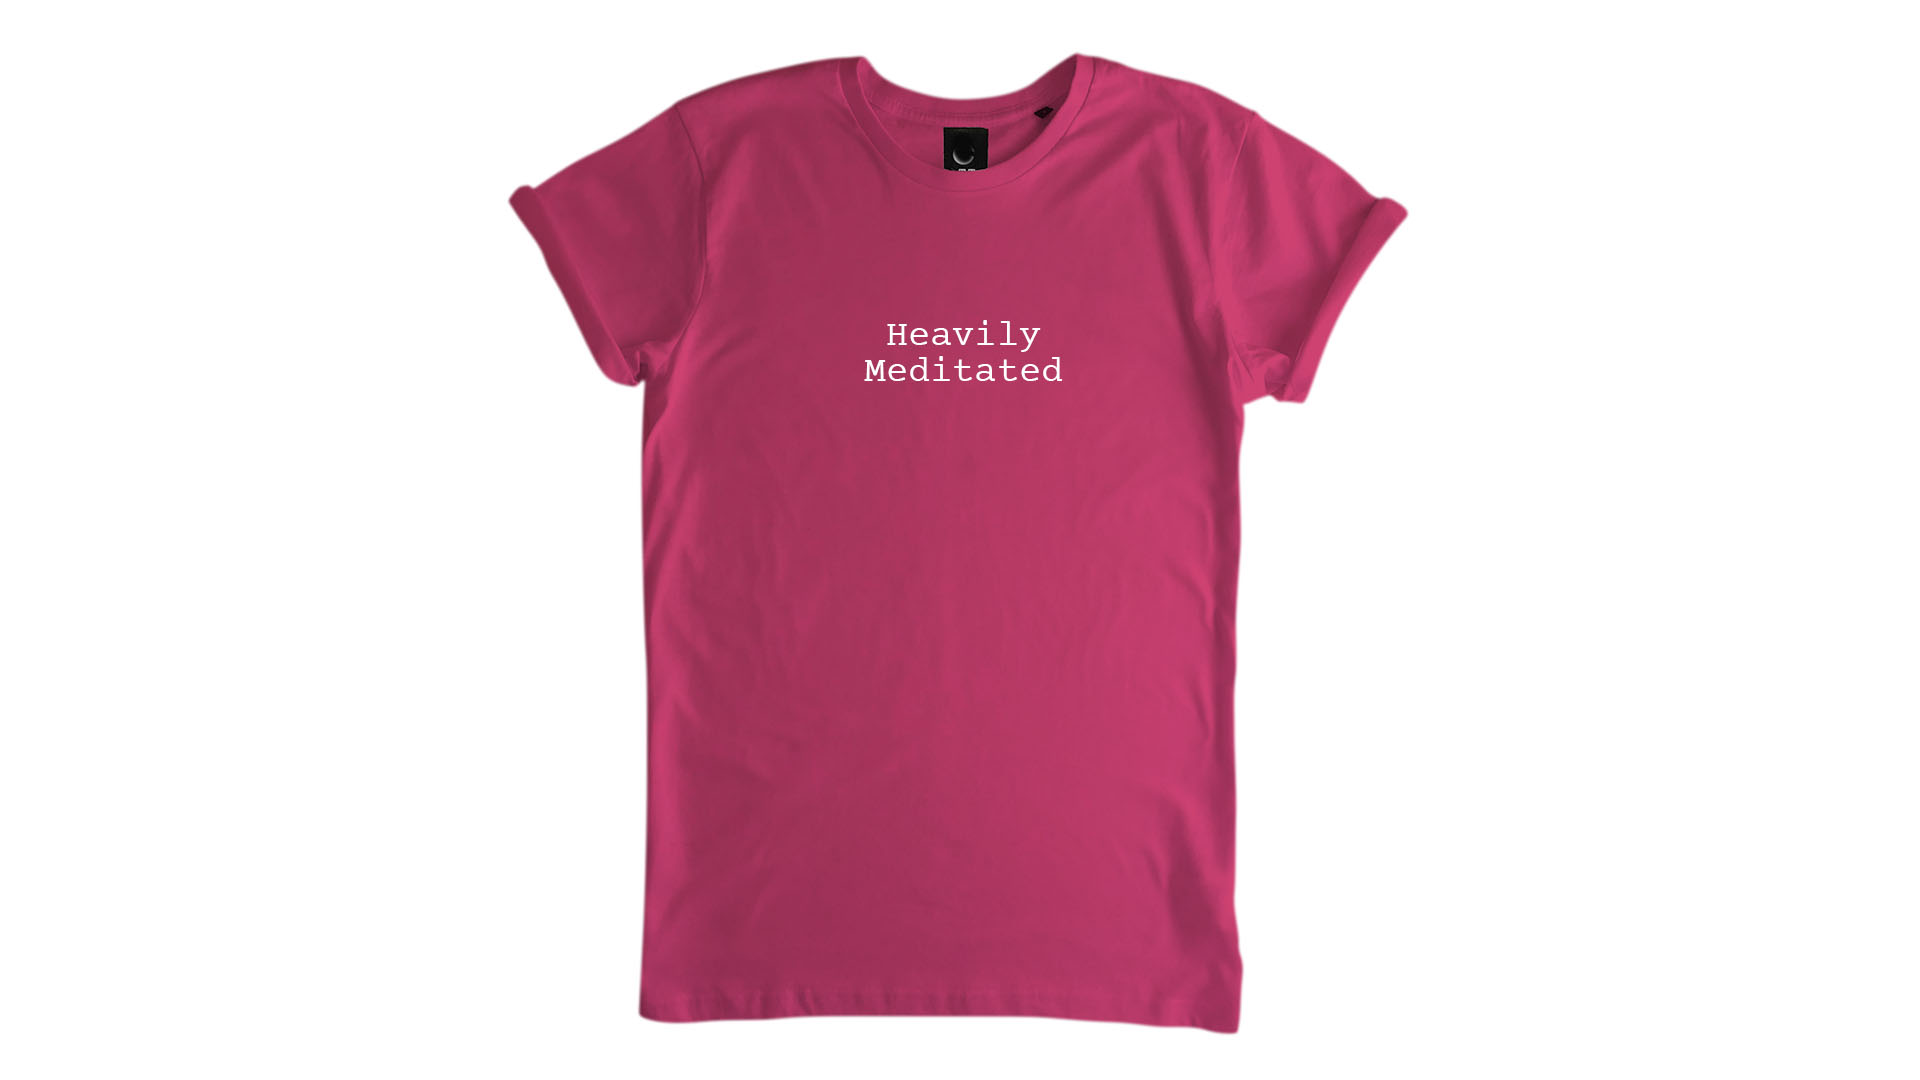 LiveLearn.Yoga Yoga T-Shirt Organic Cotton Heavily Meditated Pink